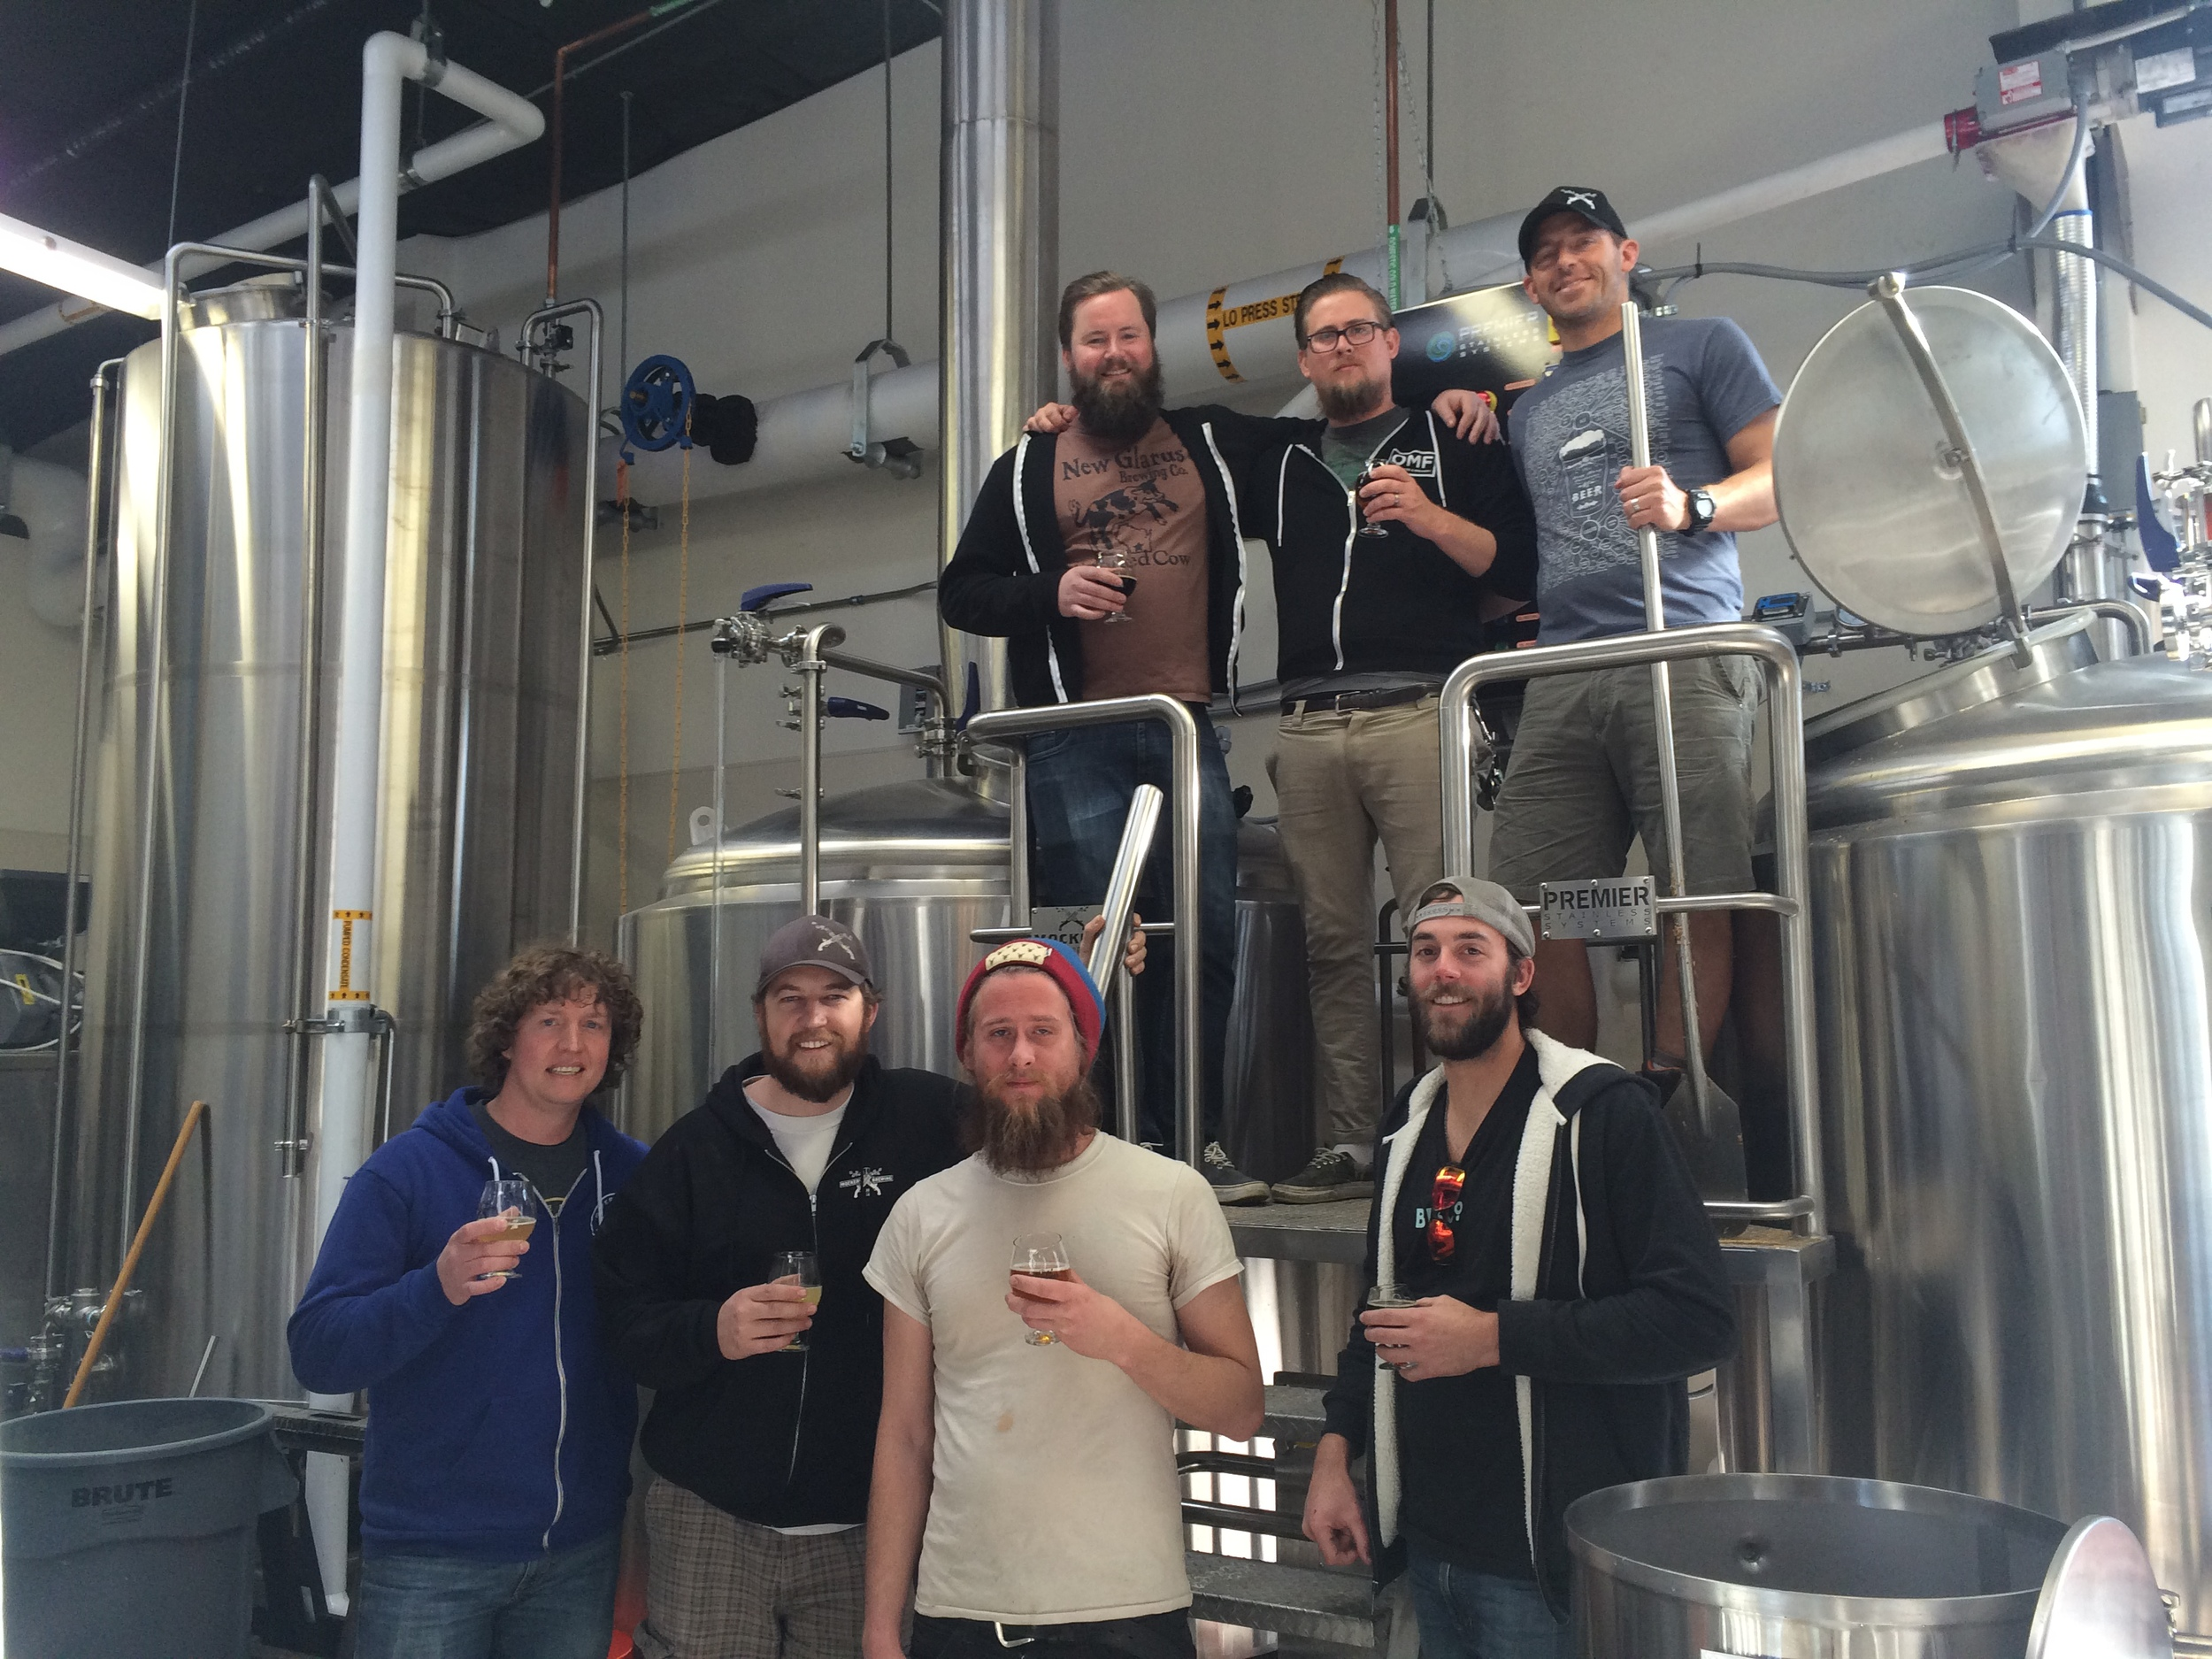 The RiNo beer crew collaborating on brew day!